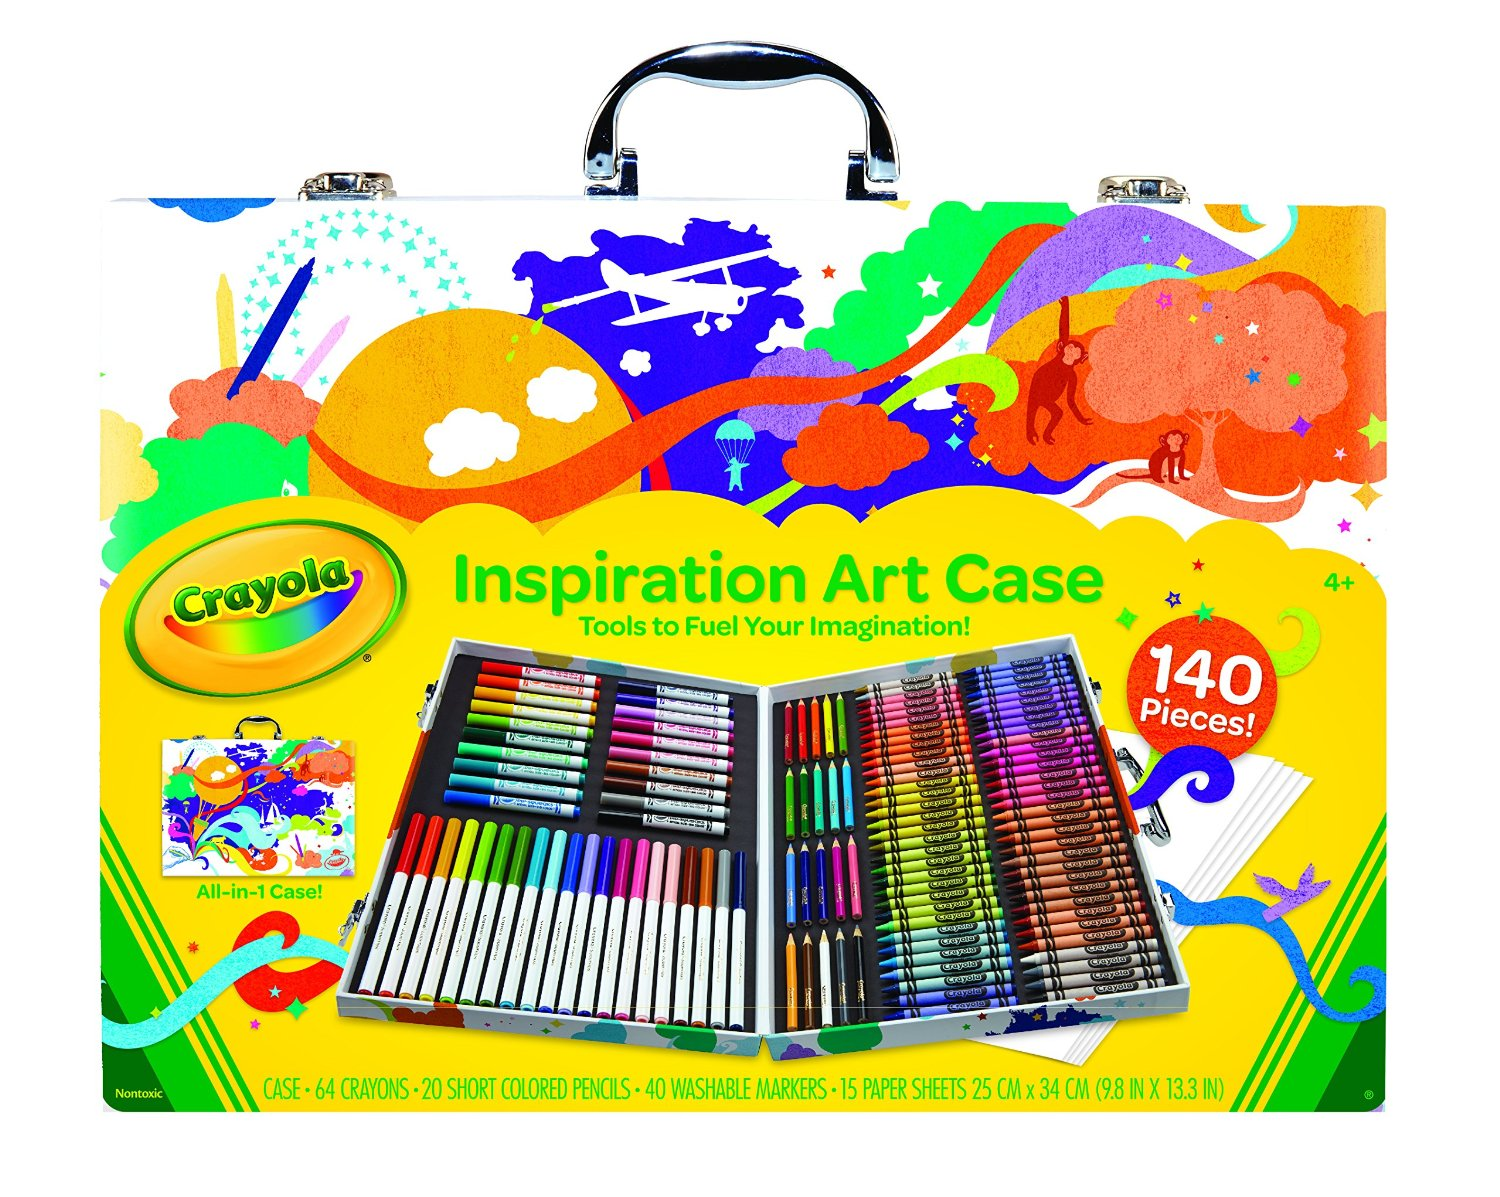 The Inspiration Art Case From Crayola Pic Amazon